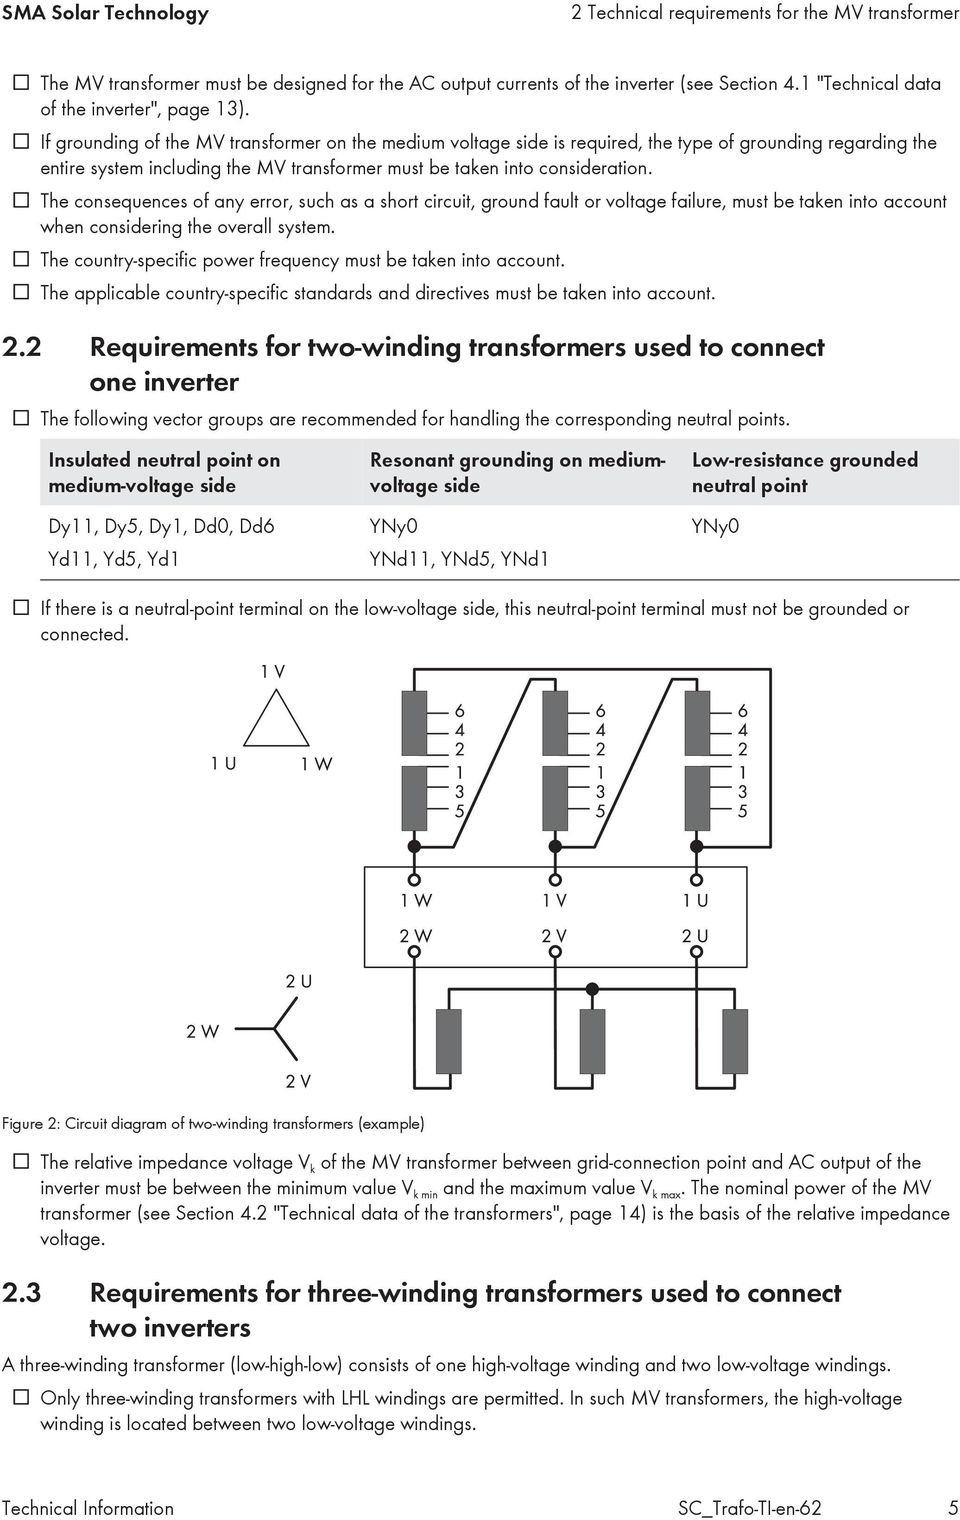 Technical Information Requirement for MV transformers and